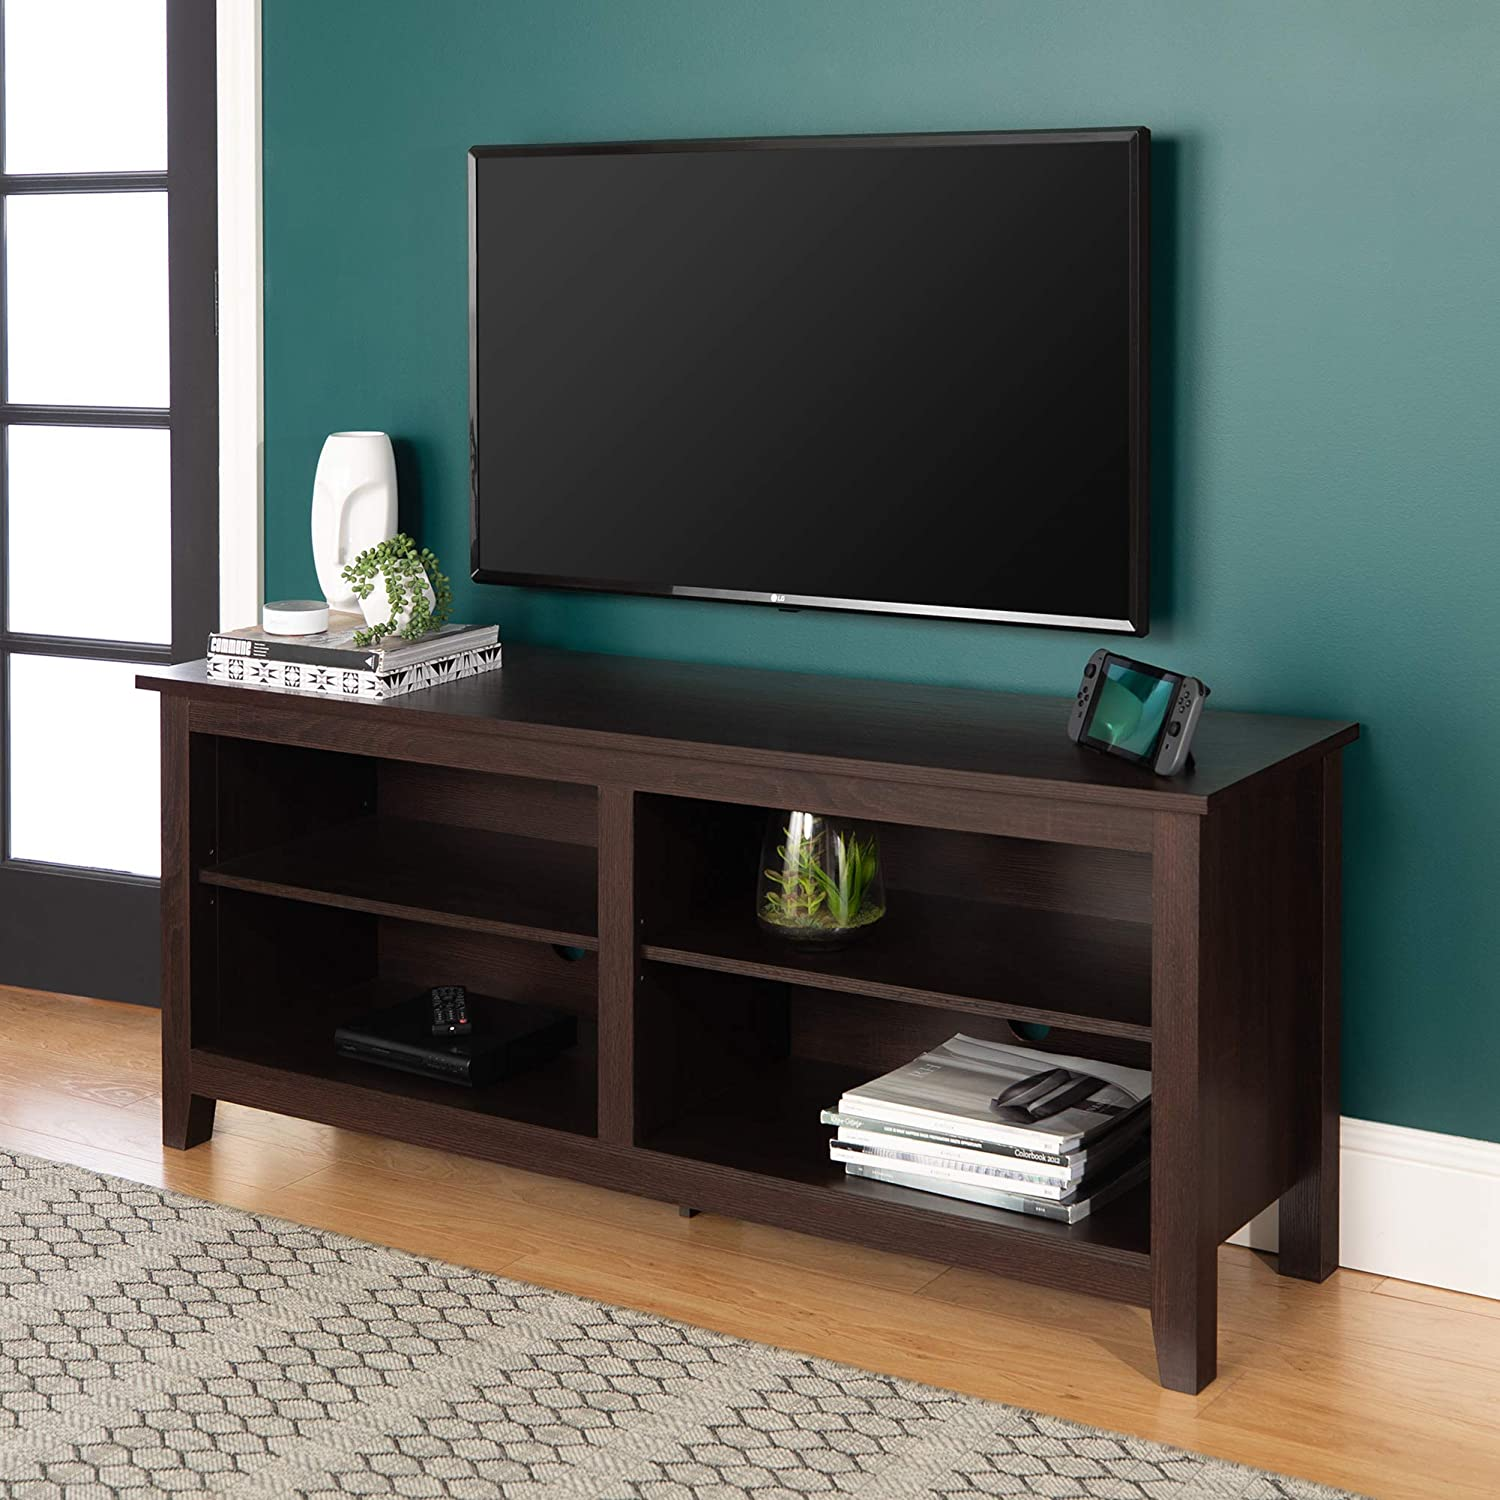 "WE Furniture Minimal Farmhouse Wood Universal Stand for TV's up to 64"" Flat Screen"